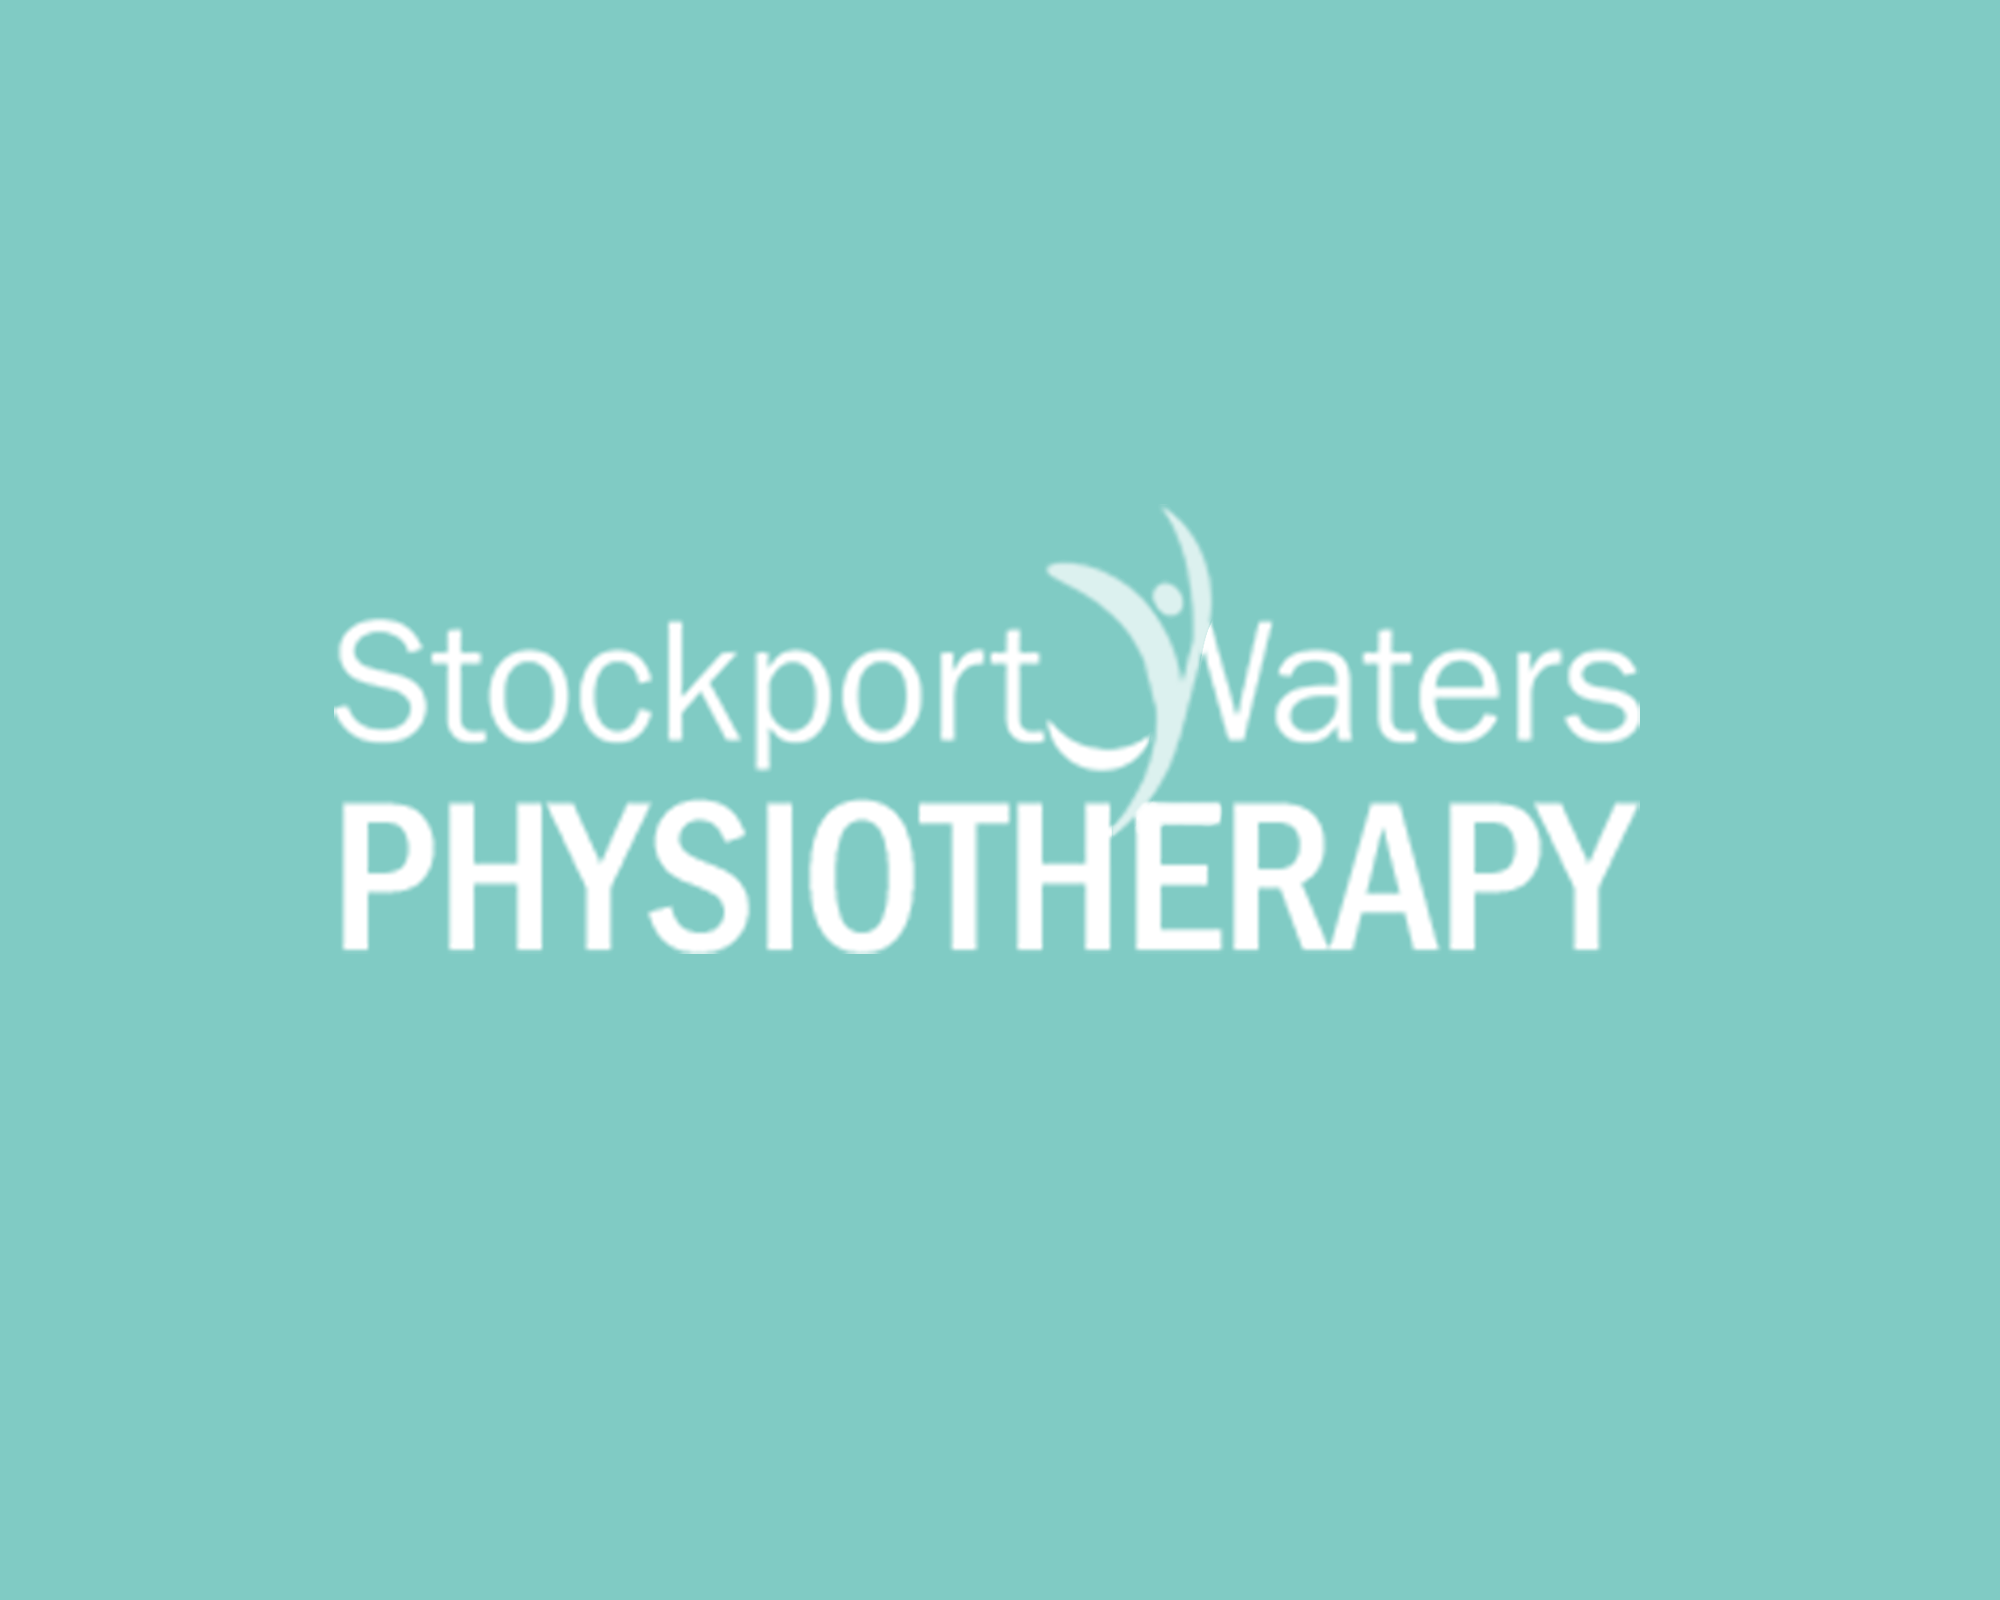 stockport waters physiotherapy Logo